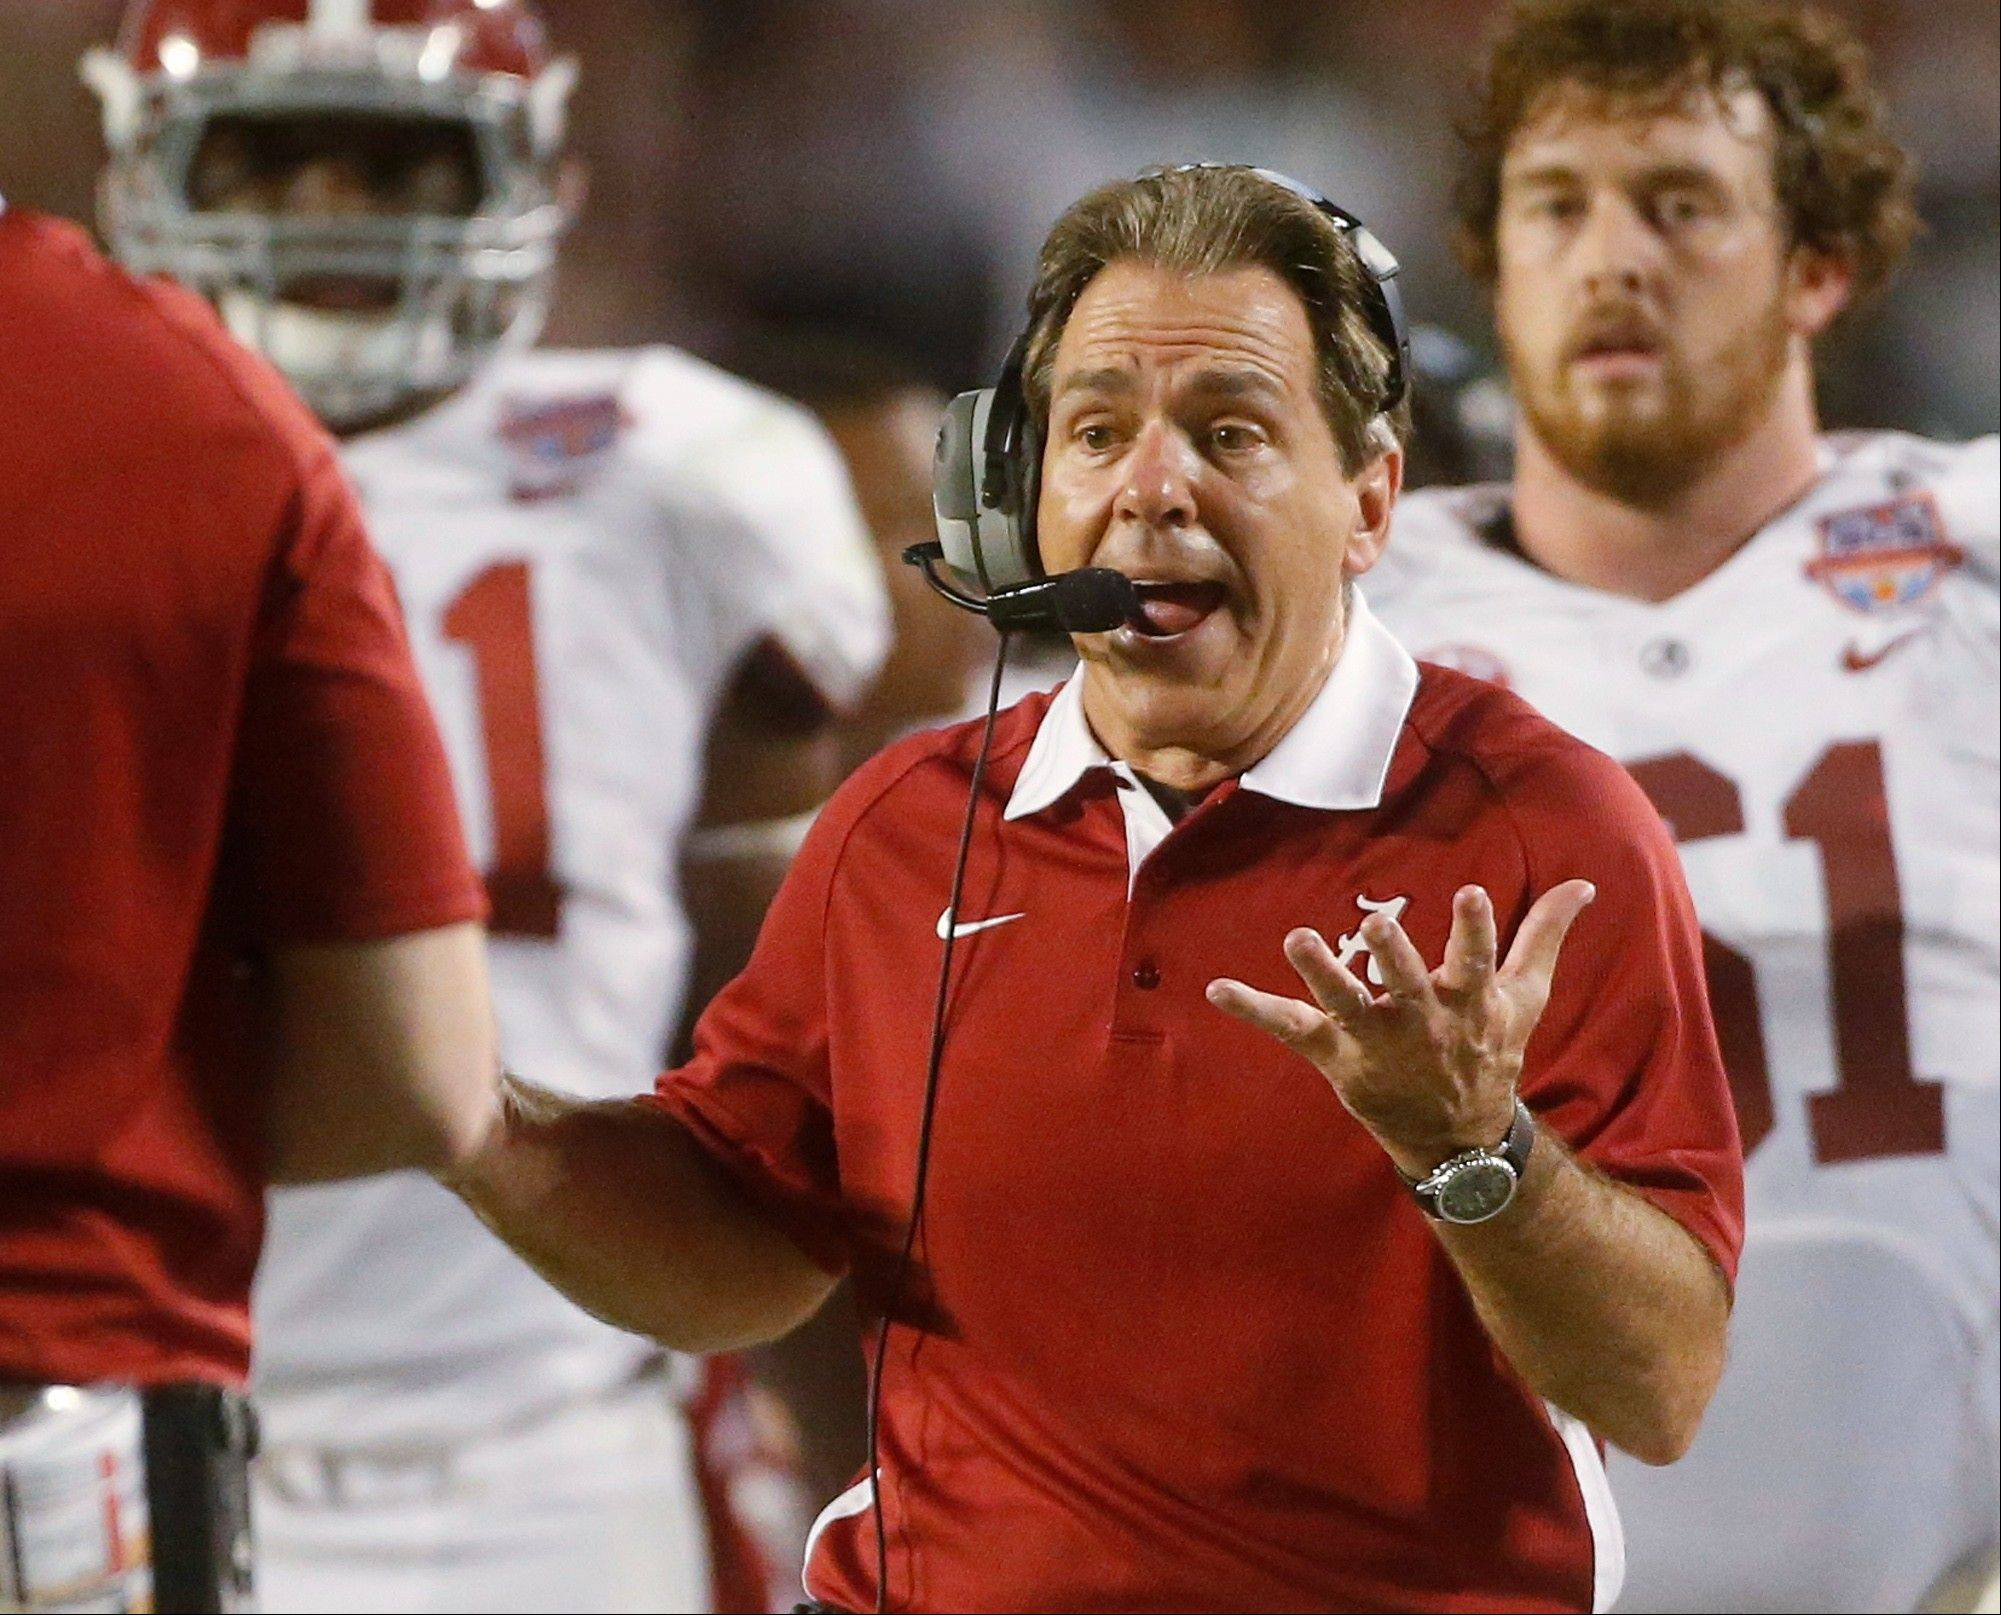 Alabama head coach Nick Saban reacts to a call during the first half of the BCS National Championship college football game against Notre Dame Monday, Jan. 7, 2013, in Miami.